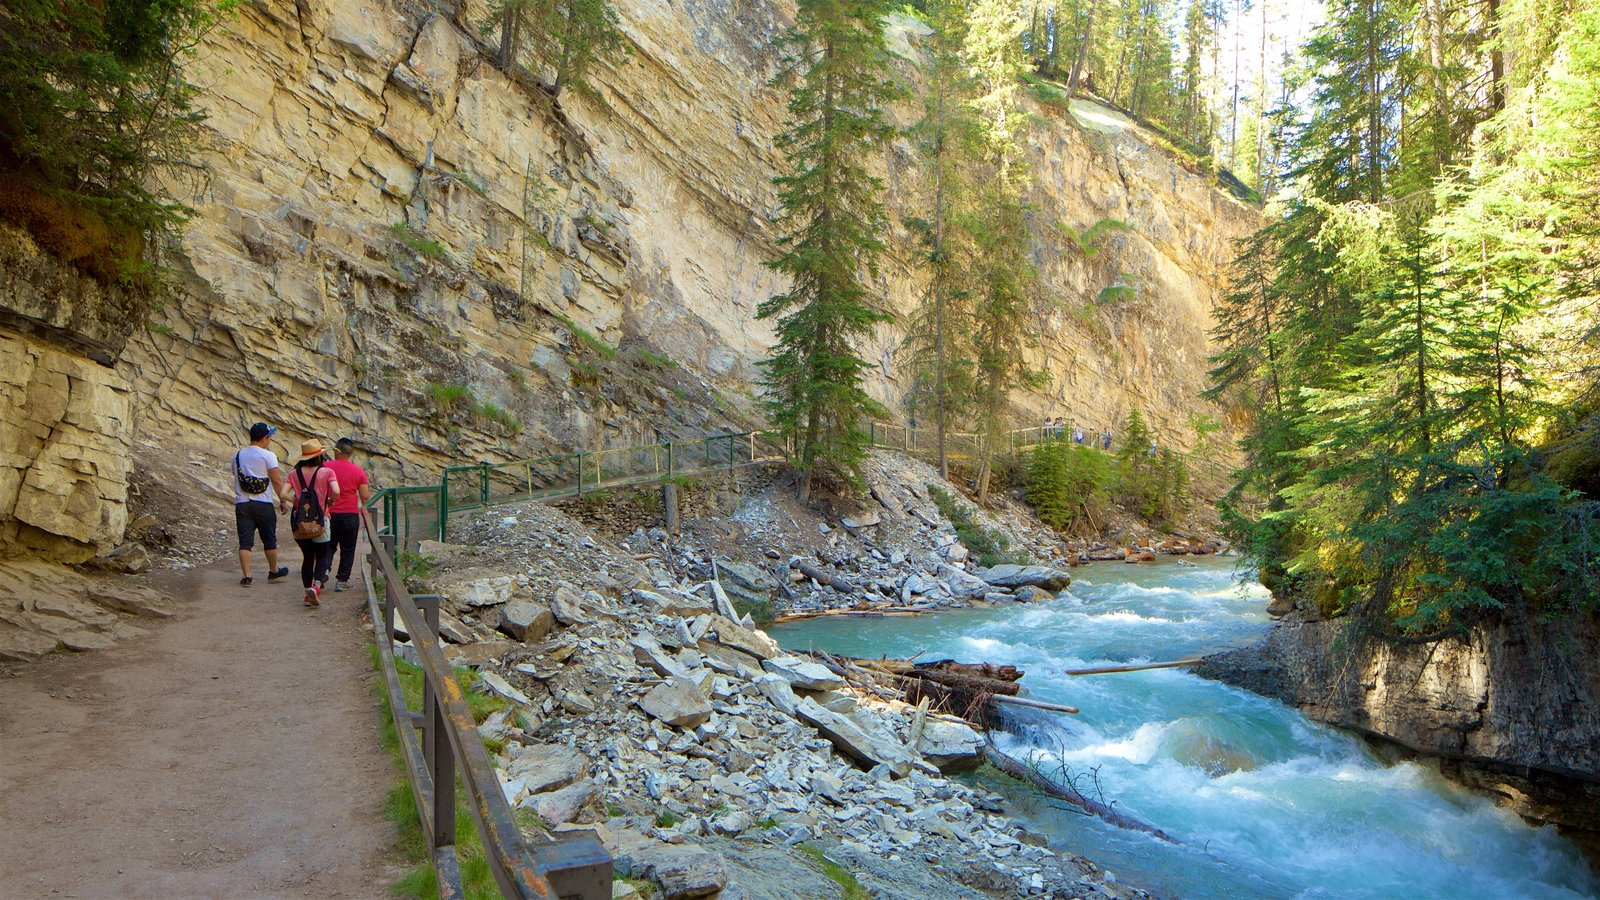 Johnston Canyon which includes hiking or walking as well as a small group of people